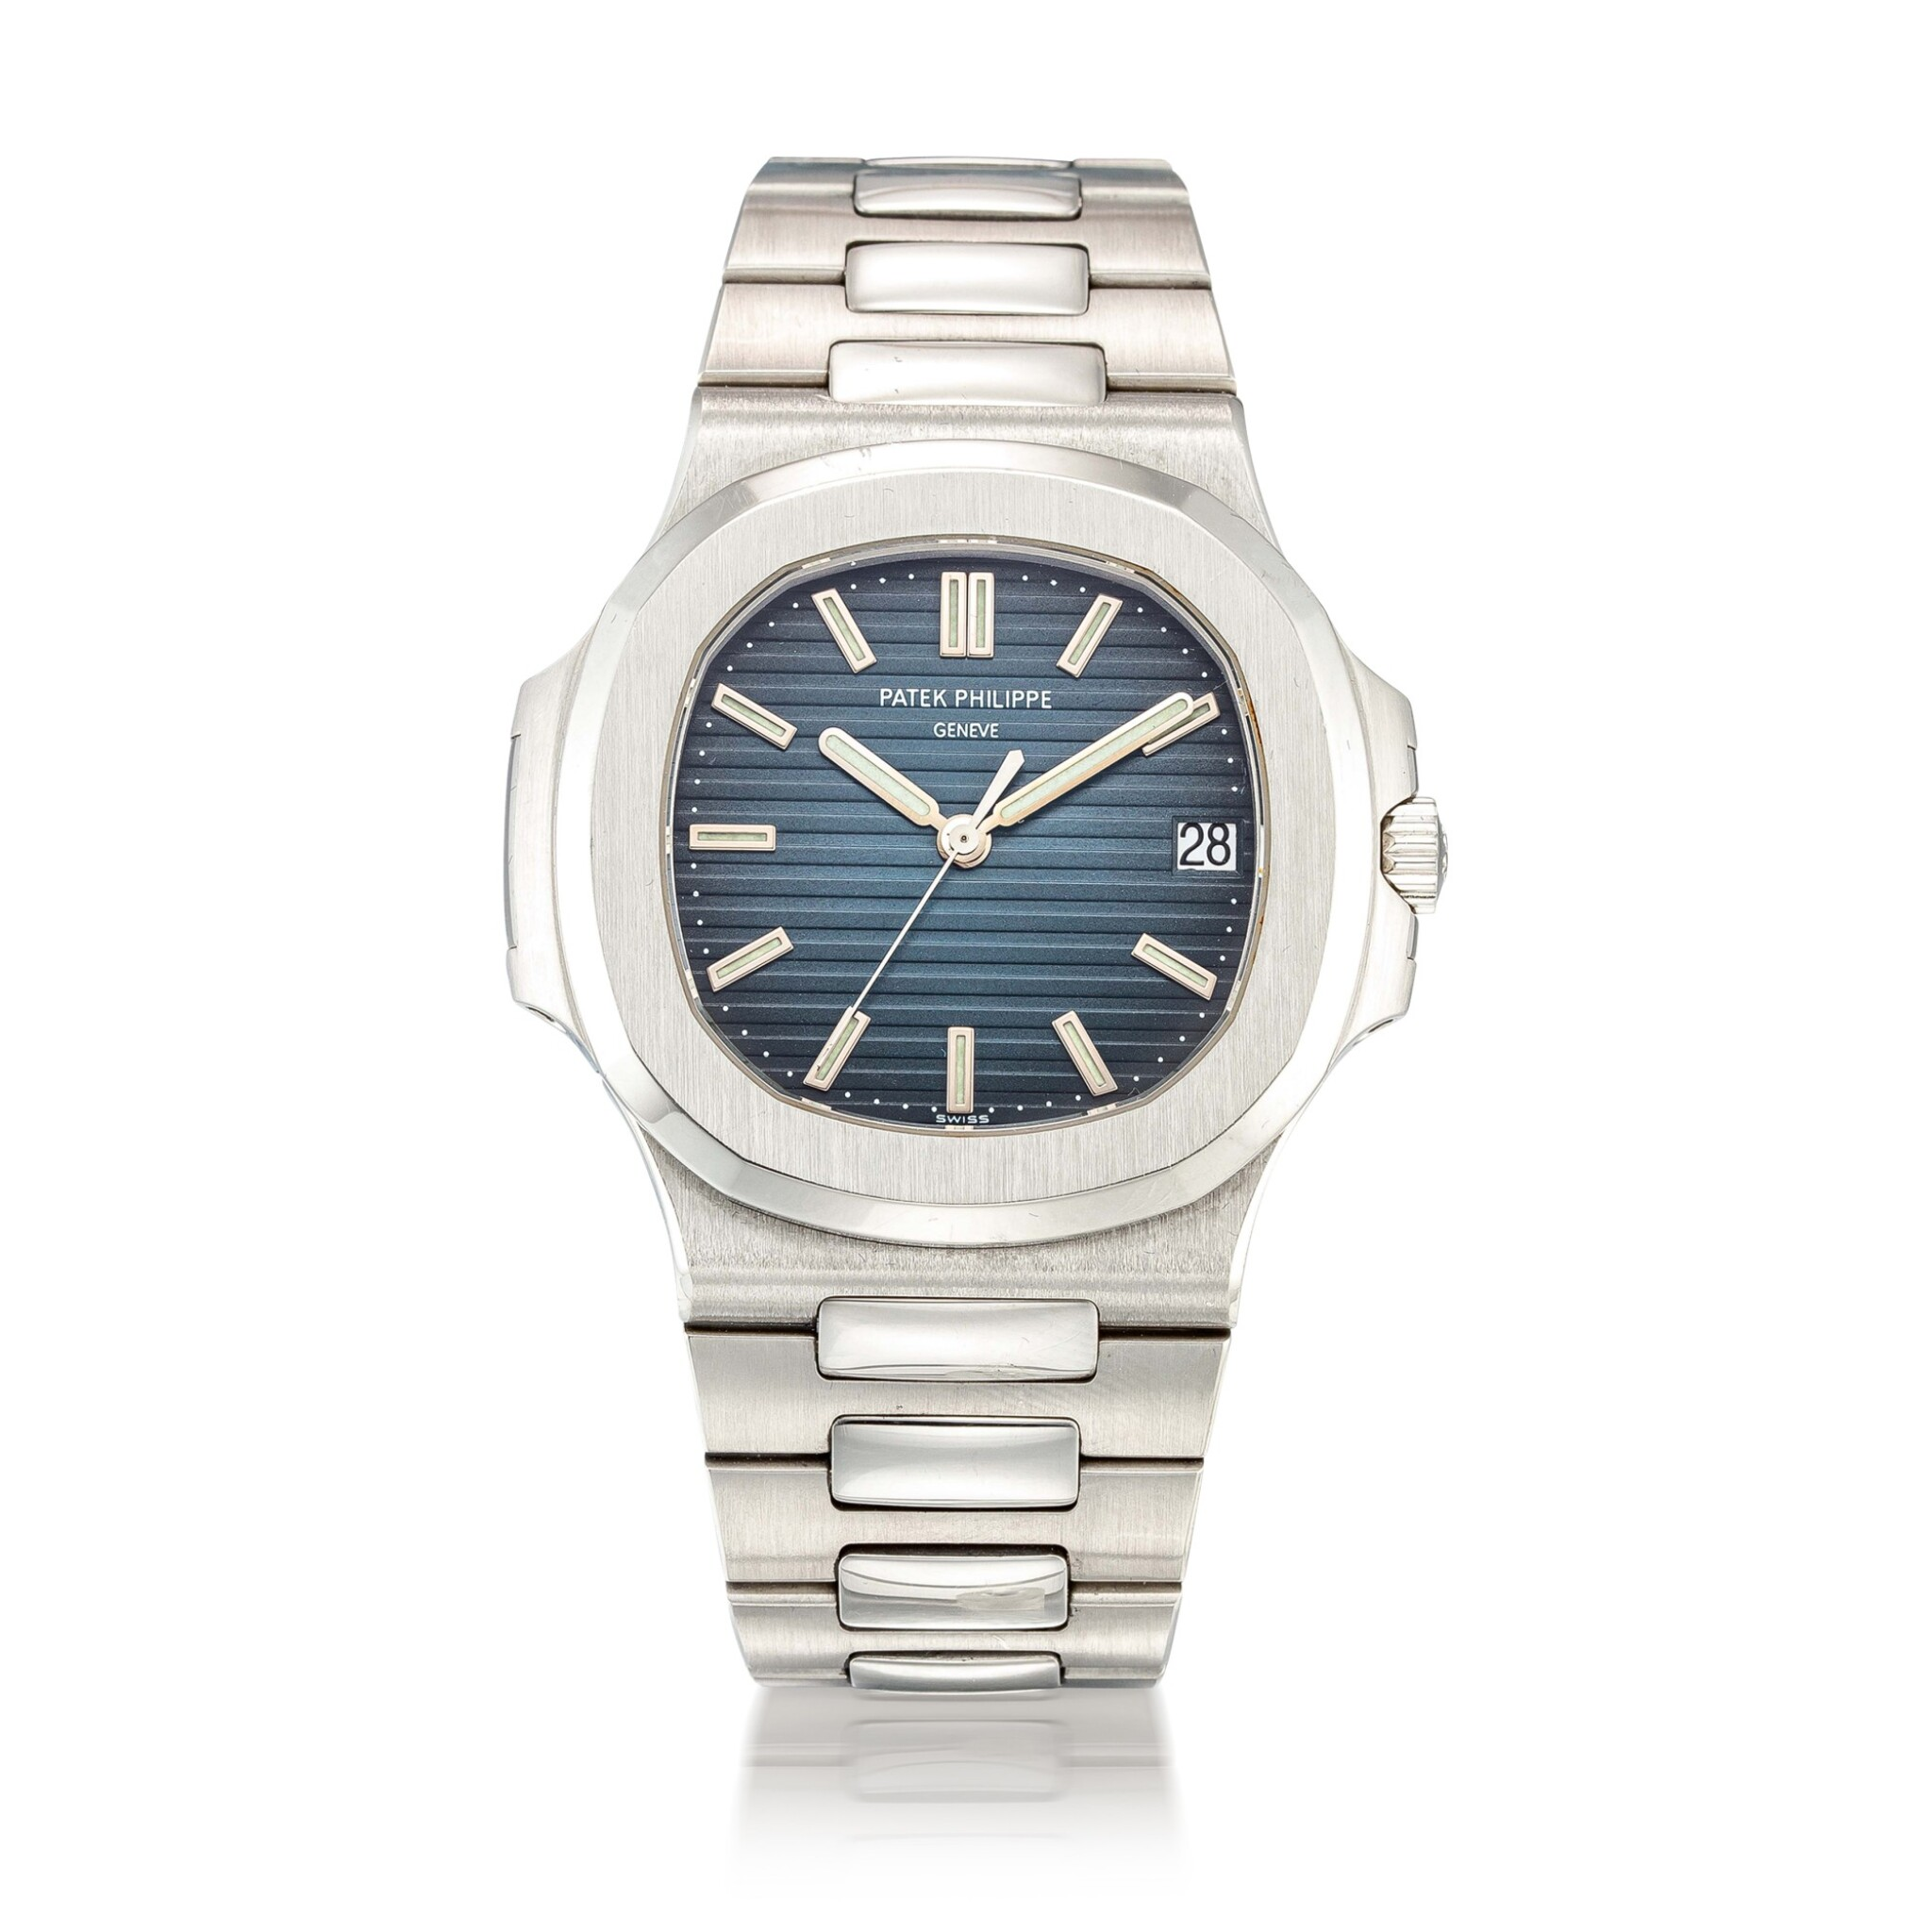 View 1 of Lot 8001. Patek Philippe | Nautilus, Reference 5711, A stainless steel bracelet watch with date, Circa 2008 | 百達翡麗 | Nautilus 型號 5711 精鋼鏈帶腕錶、備日期顯示,約2008年製.